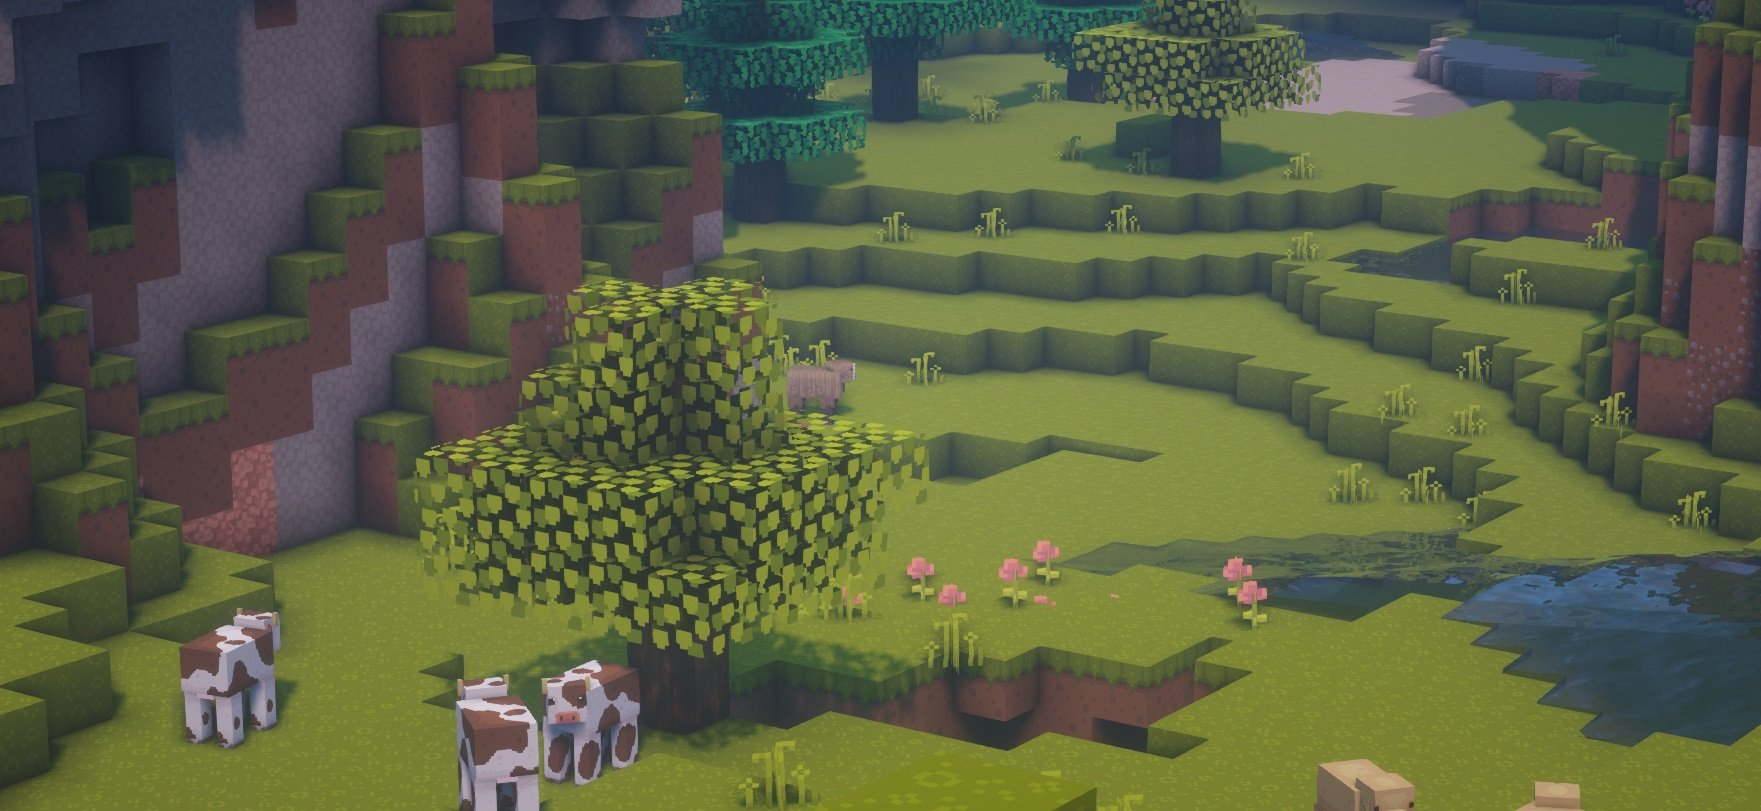 dandelion shadery BSL 1.15.2 minecraft moby 1